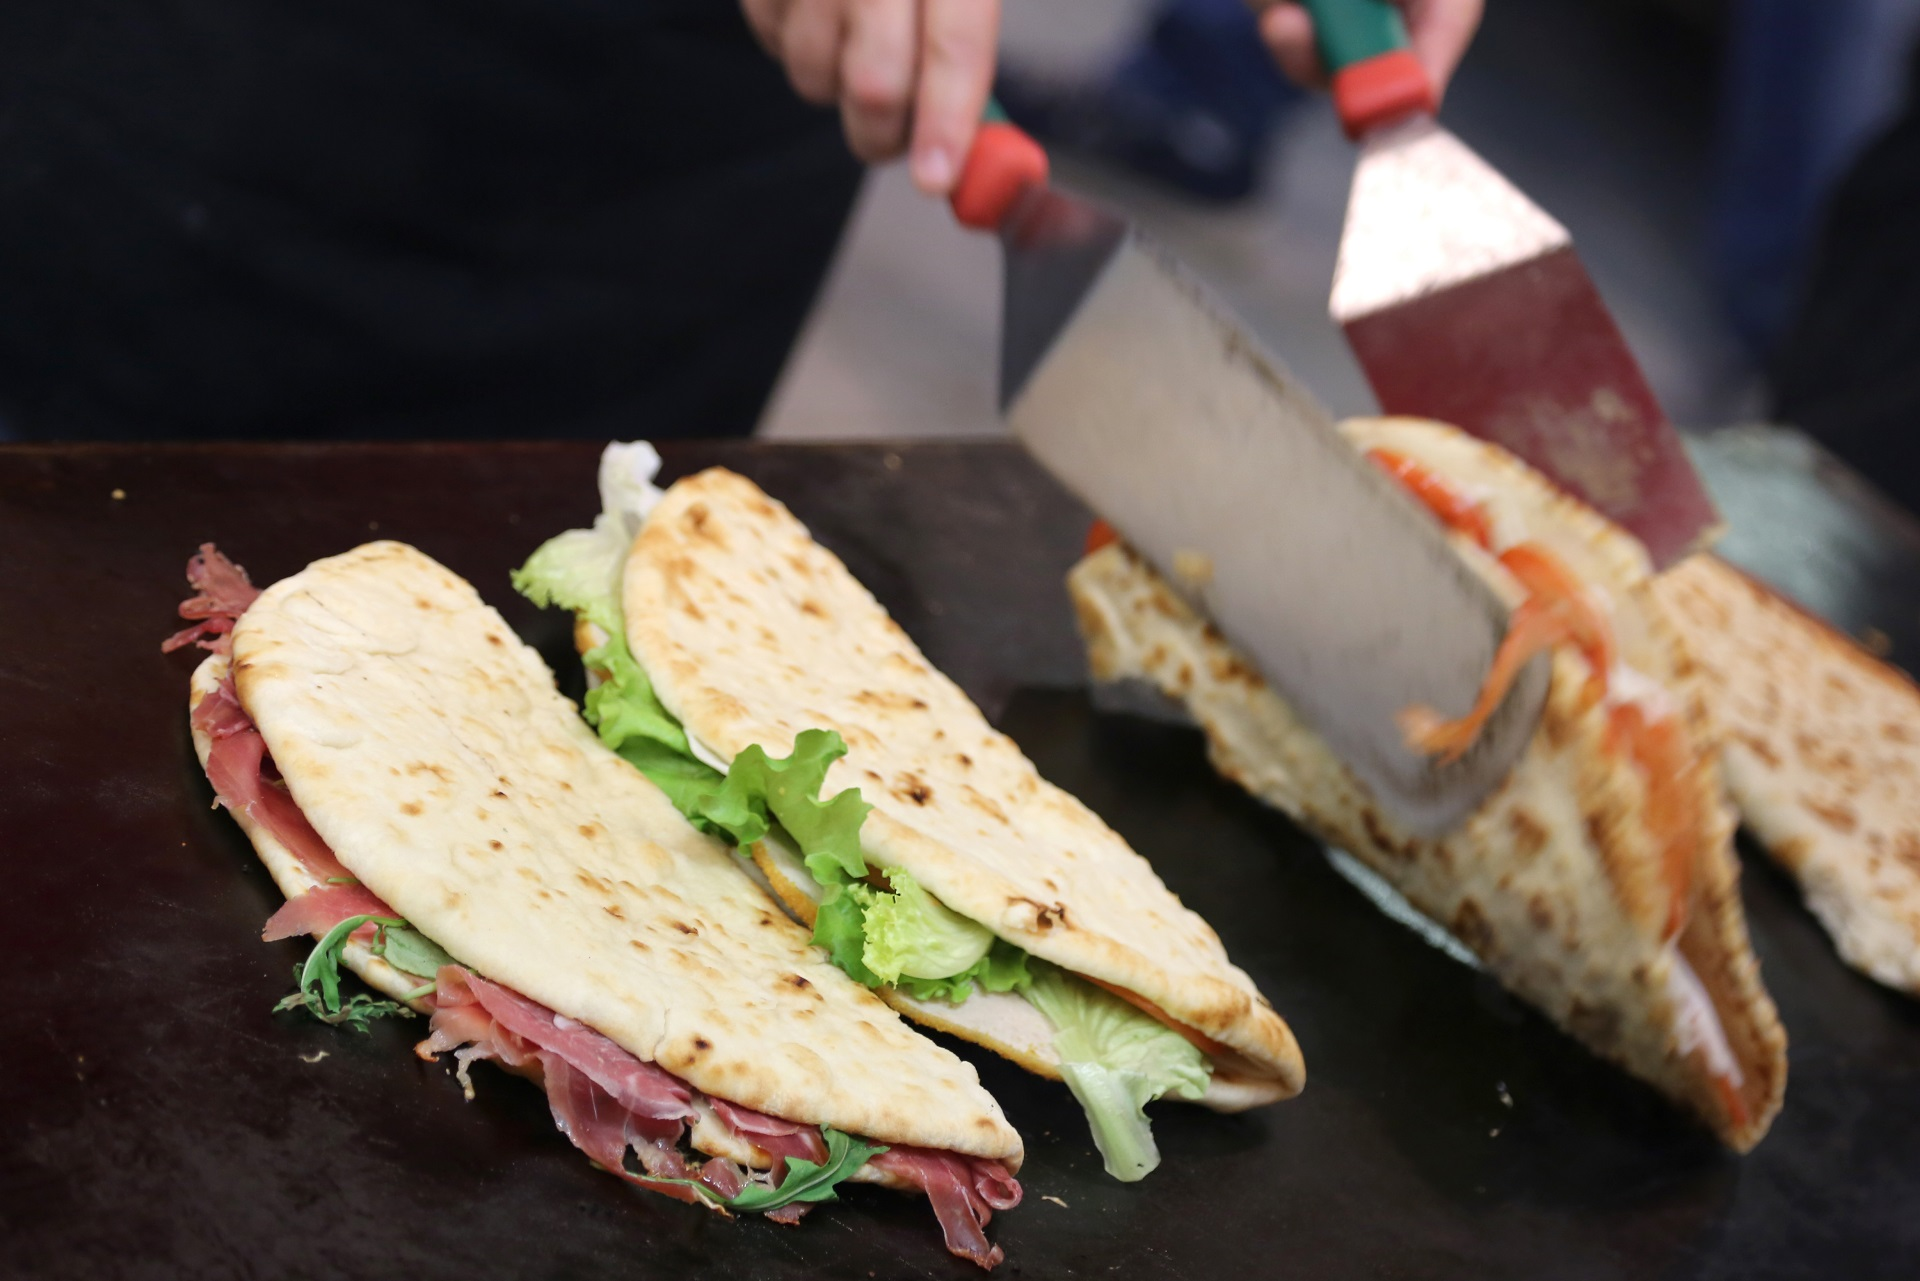 Typical Italian piadinas